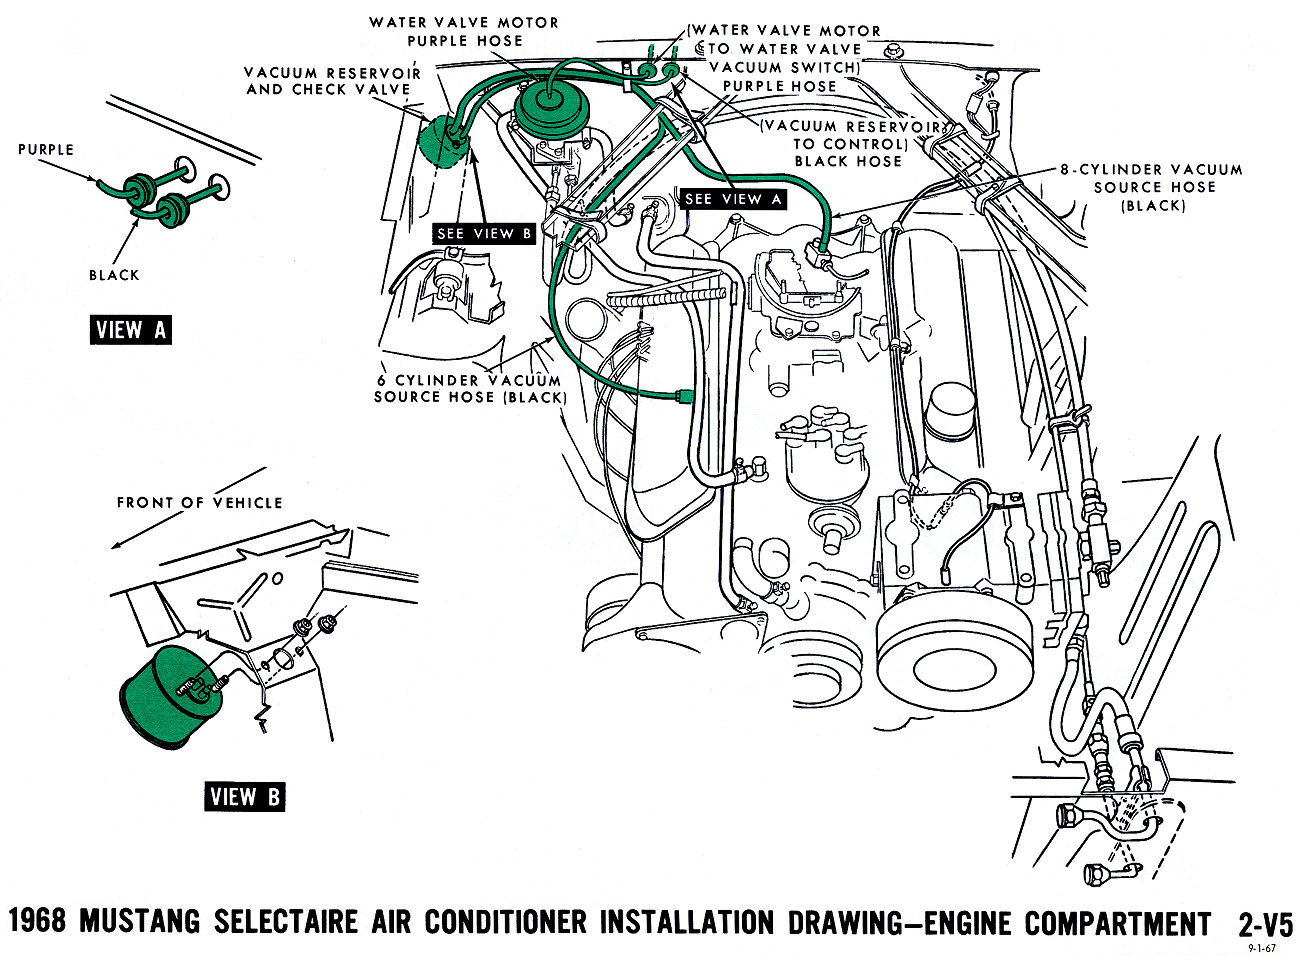 1968 Mustang Vacuum Diagrams